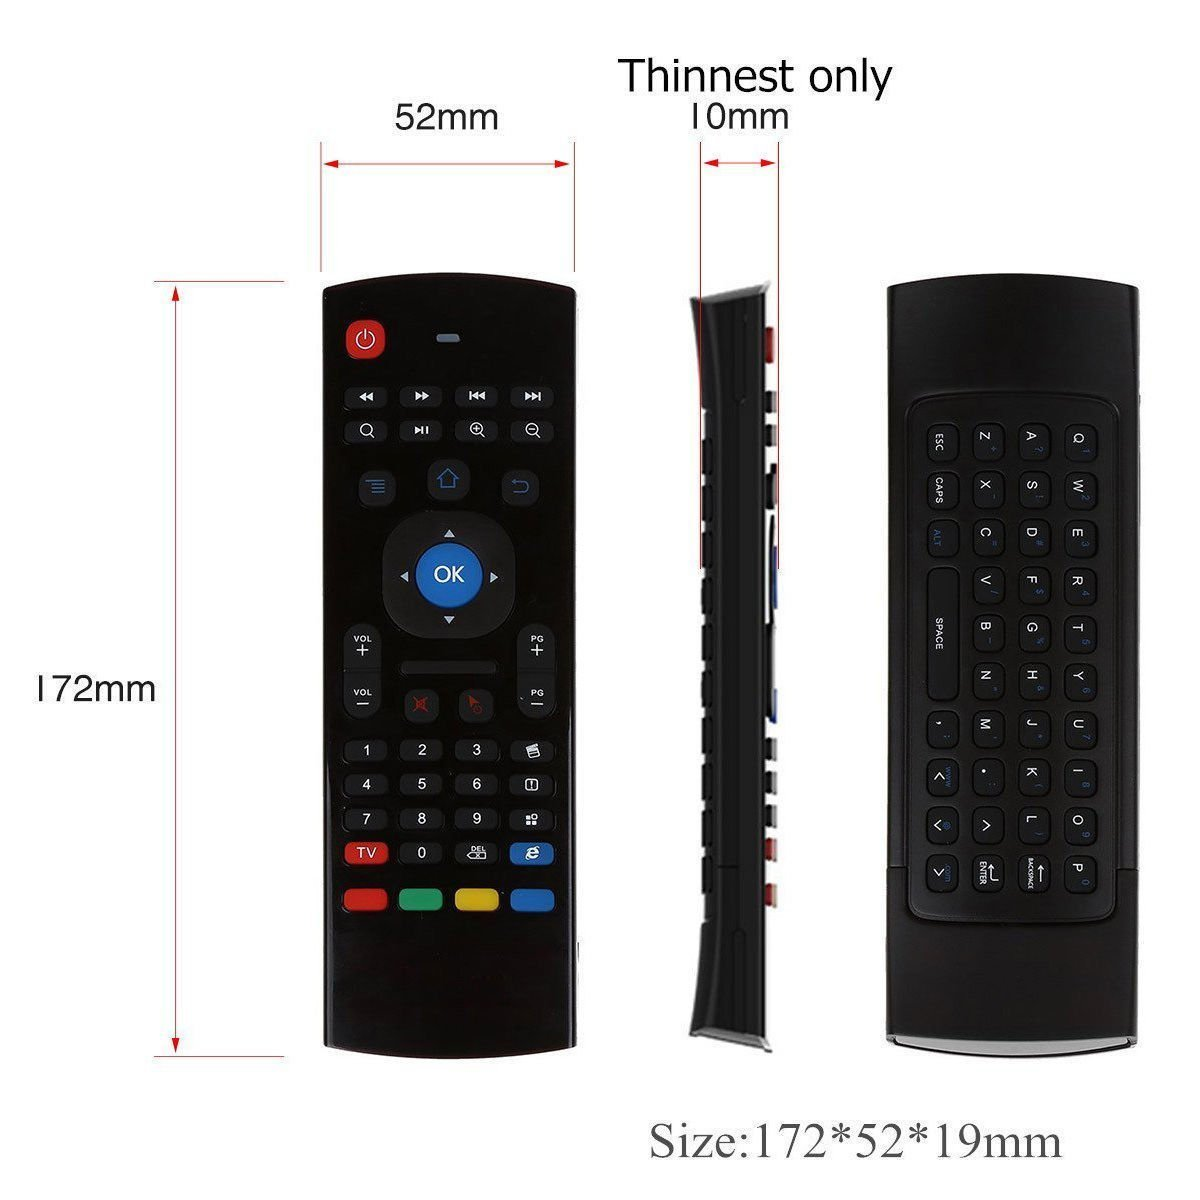 REDGO Air Mouse, 2.4G MX3 Portable Mini Wireless Qwerty Keyboard Mouse, Multifunctional Infrared Remote Control for Android Smart TV Box IPTV HTPC Mini PC Windows IOS MAC Xbox by REDGO (Image #2)